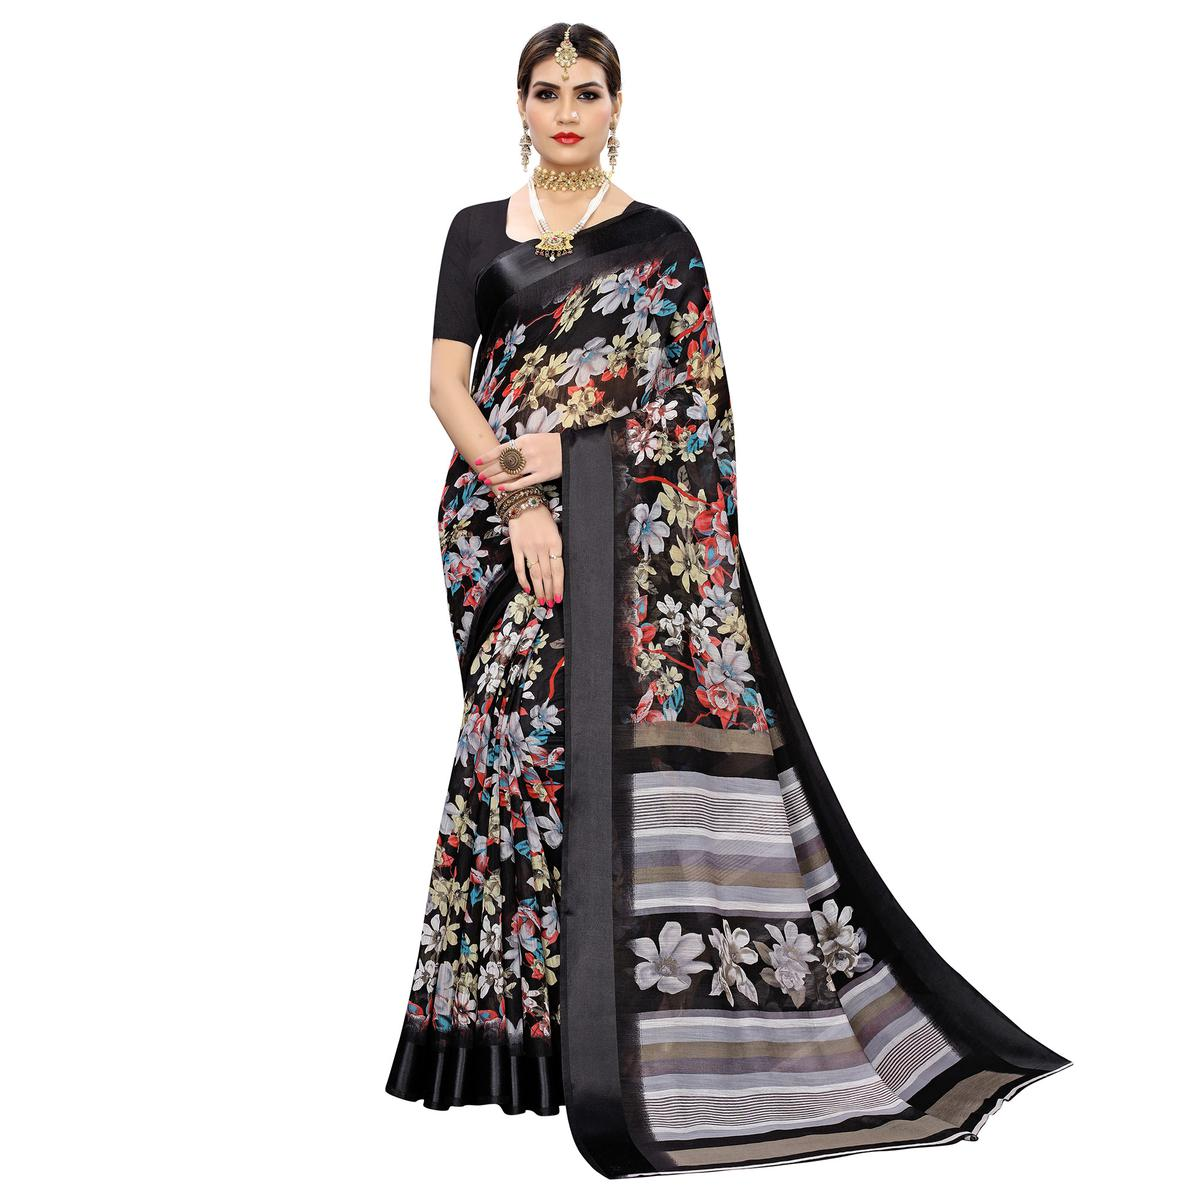 Lovely Black Colored Casual Digital Floral Printed Linen Saree